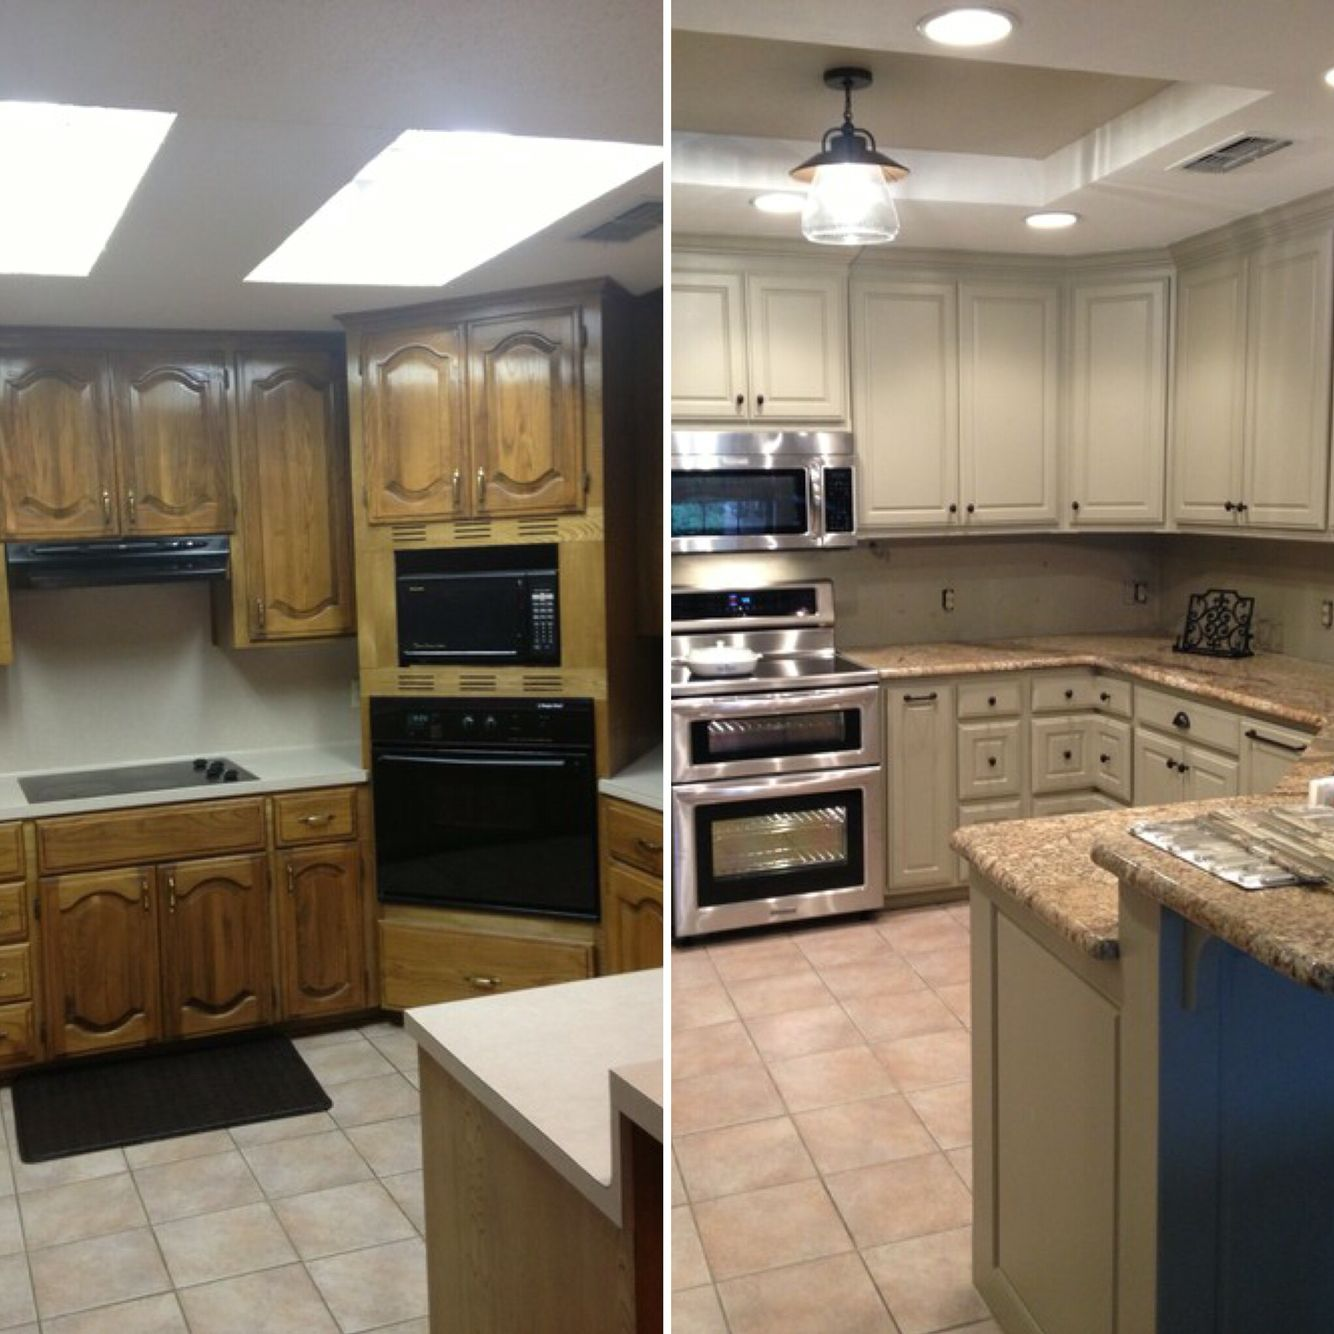 overhead kitchen lighting when remove RECESSED fluorescent light box how to fix keep the existing side moulding patch the hole then put moulding on INSIDE of box